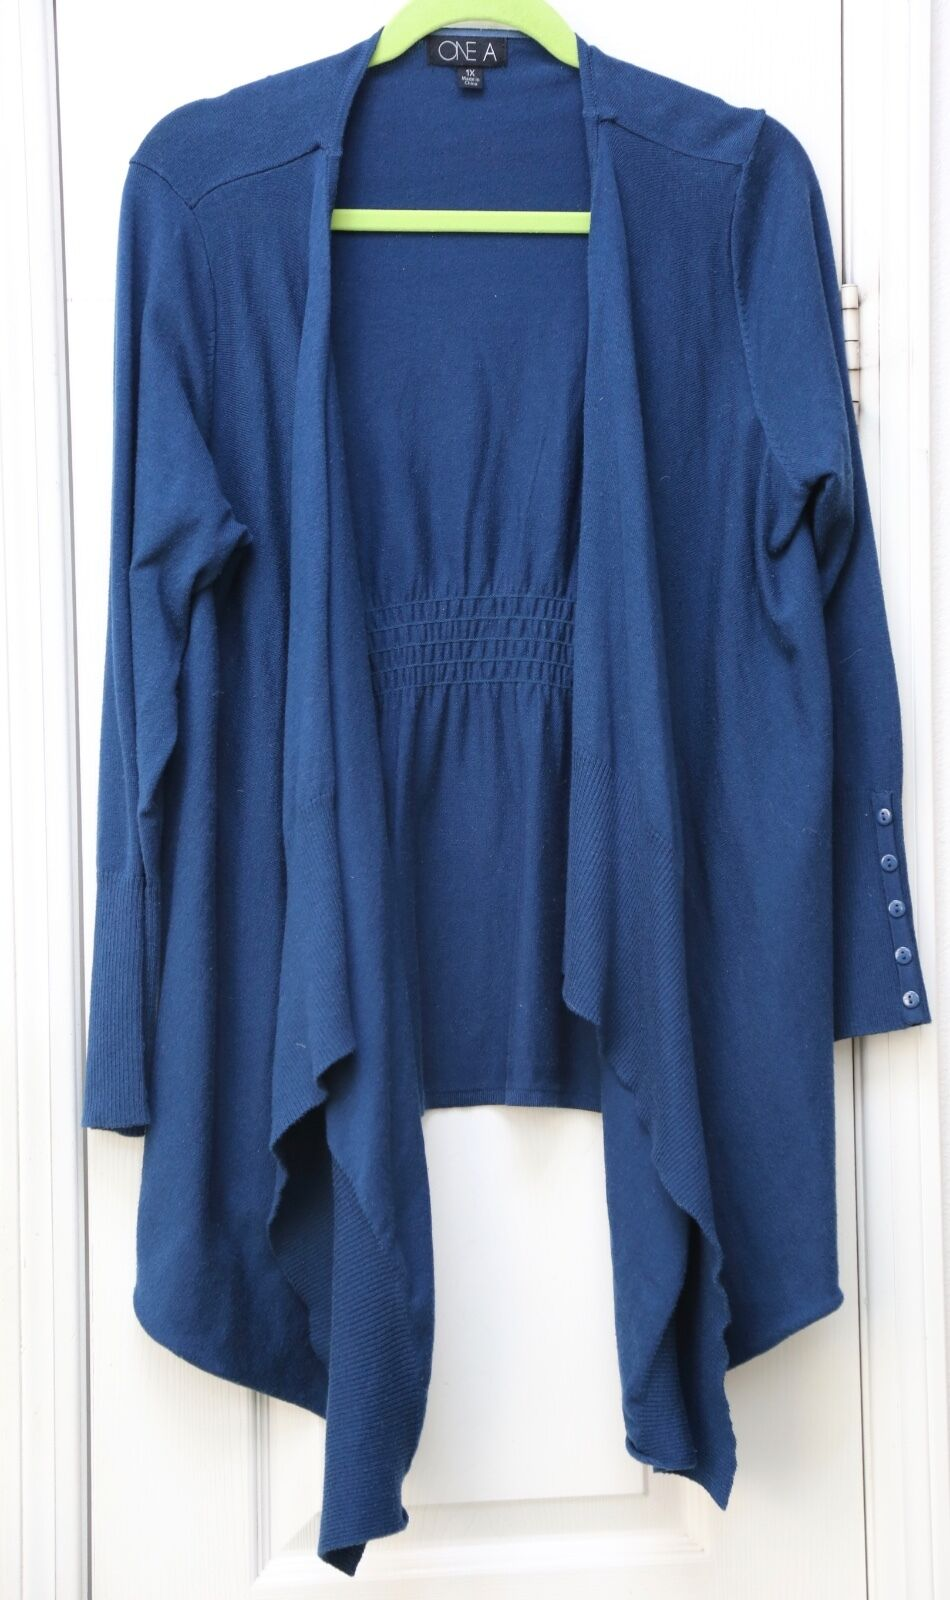 One A woman's plus 1X bluee sweater NWOT